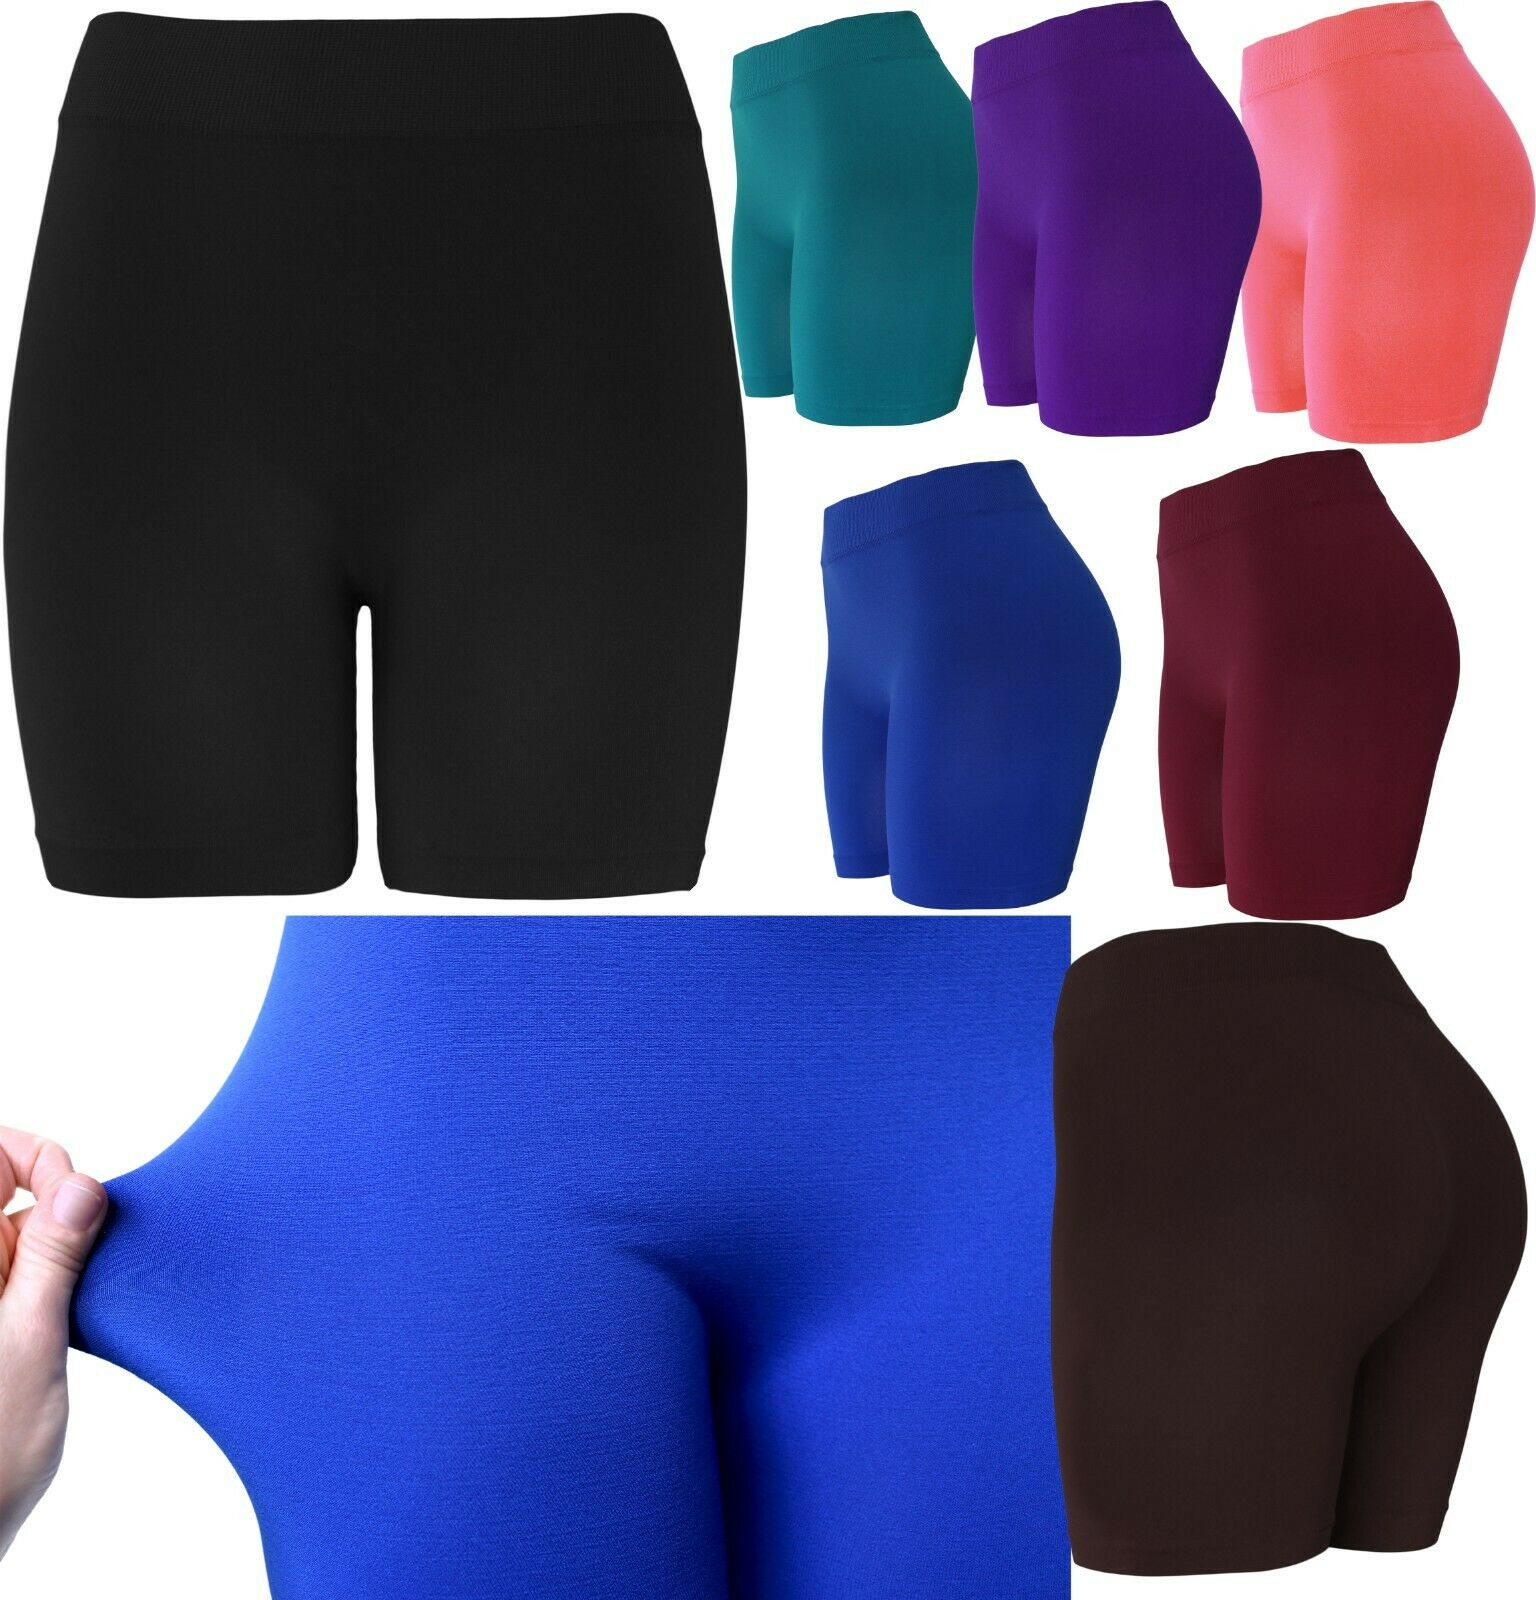 Women's 13″ Long Slip Shorts Seamless Biker Bermuda Gusset Shorts Clothing, Shoes & Accessories